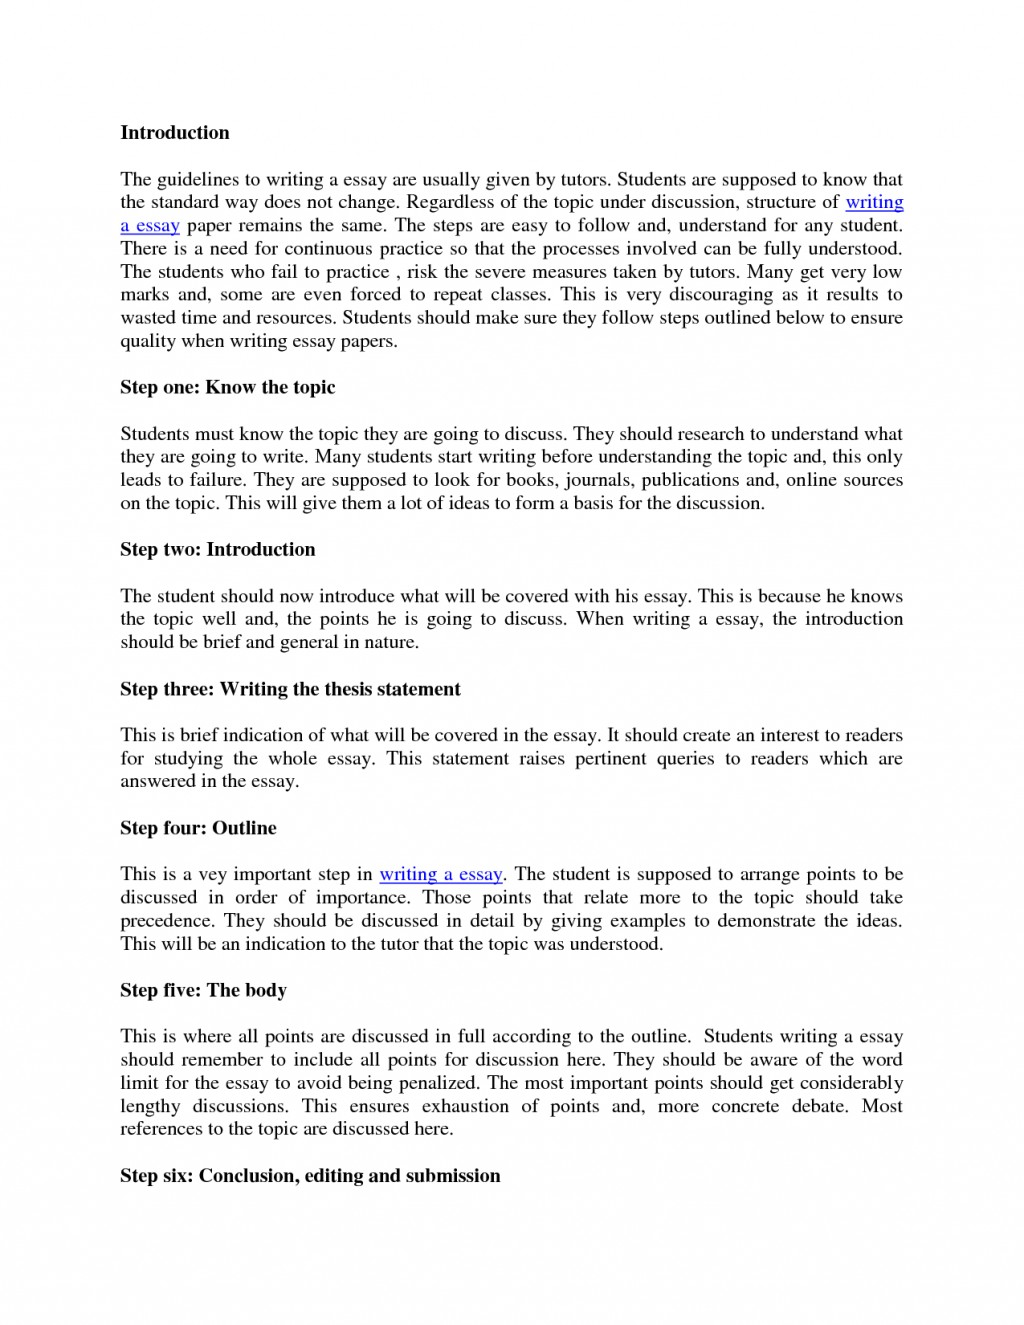 010 Essay Example Good Intros For Essays How To Write An Obfuscata L Unusual Introductions Research Papers Examples Pdf Expository Large